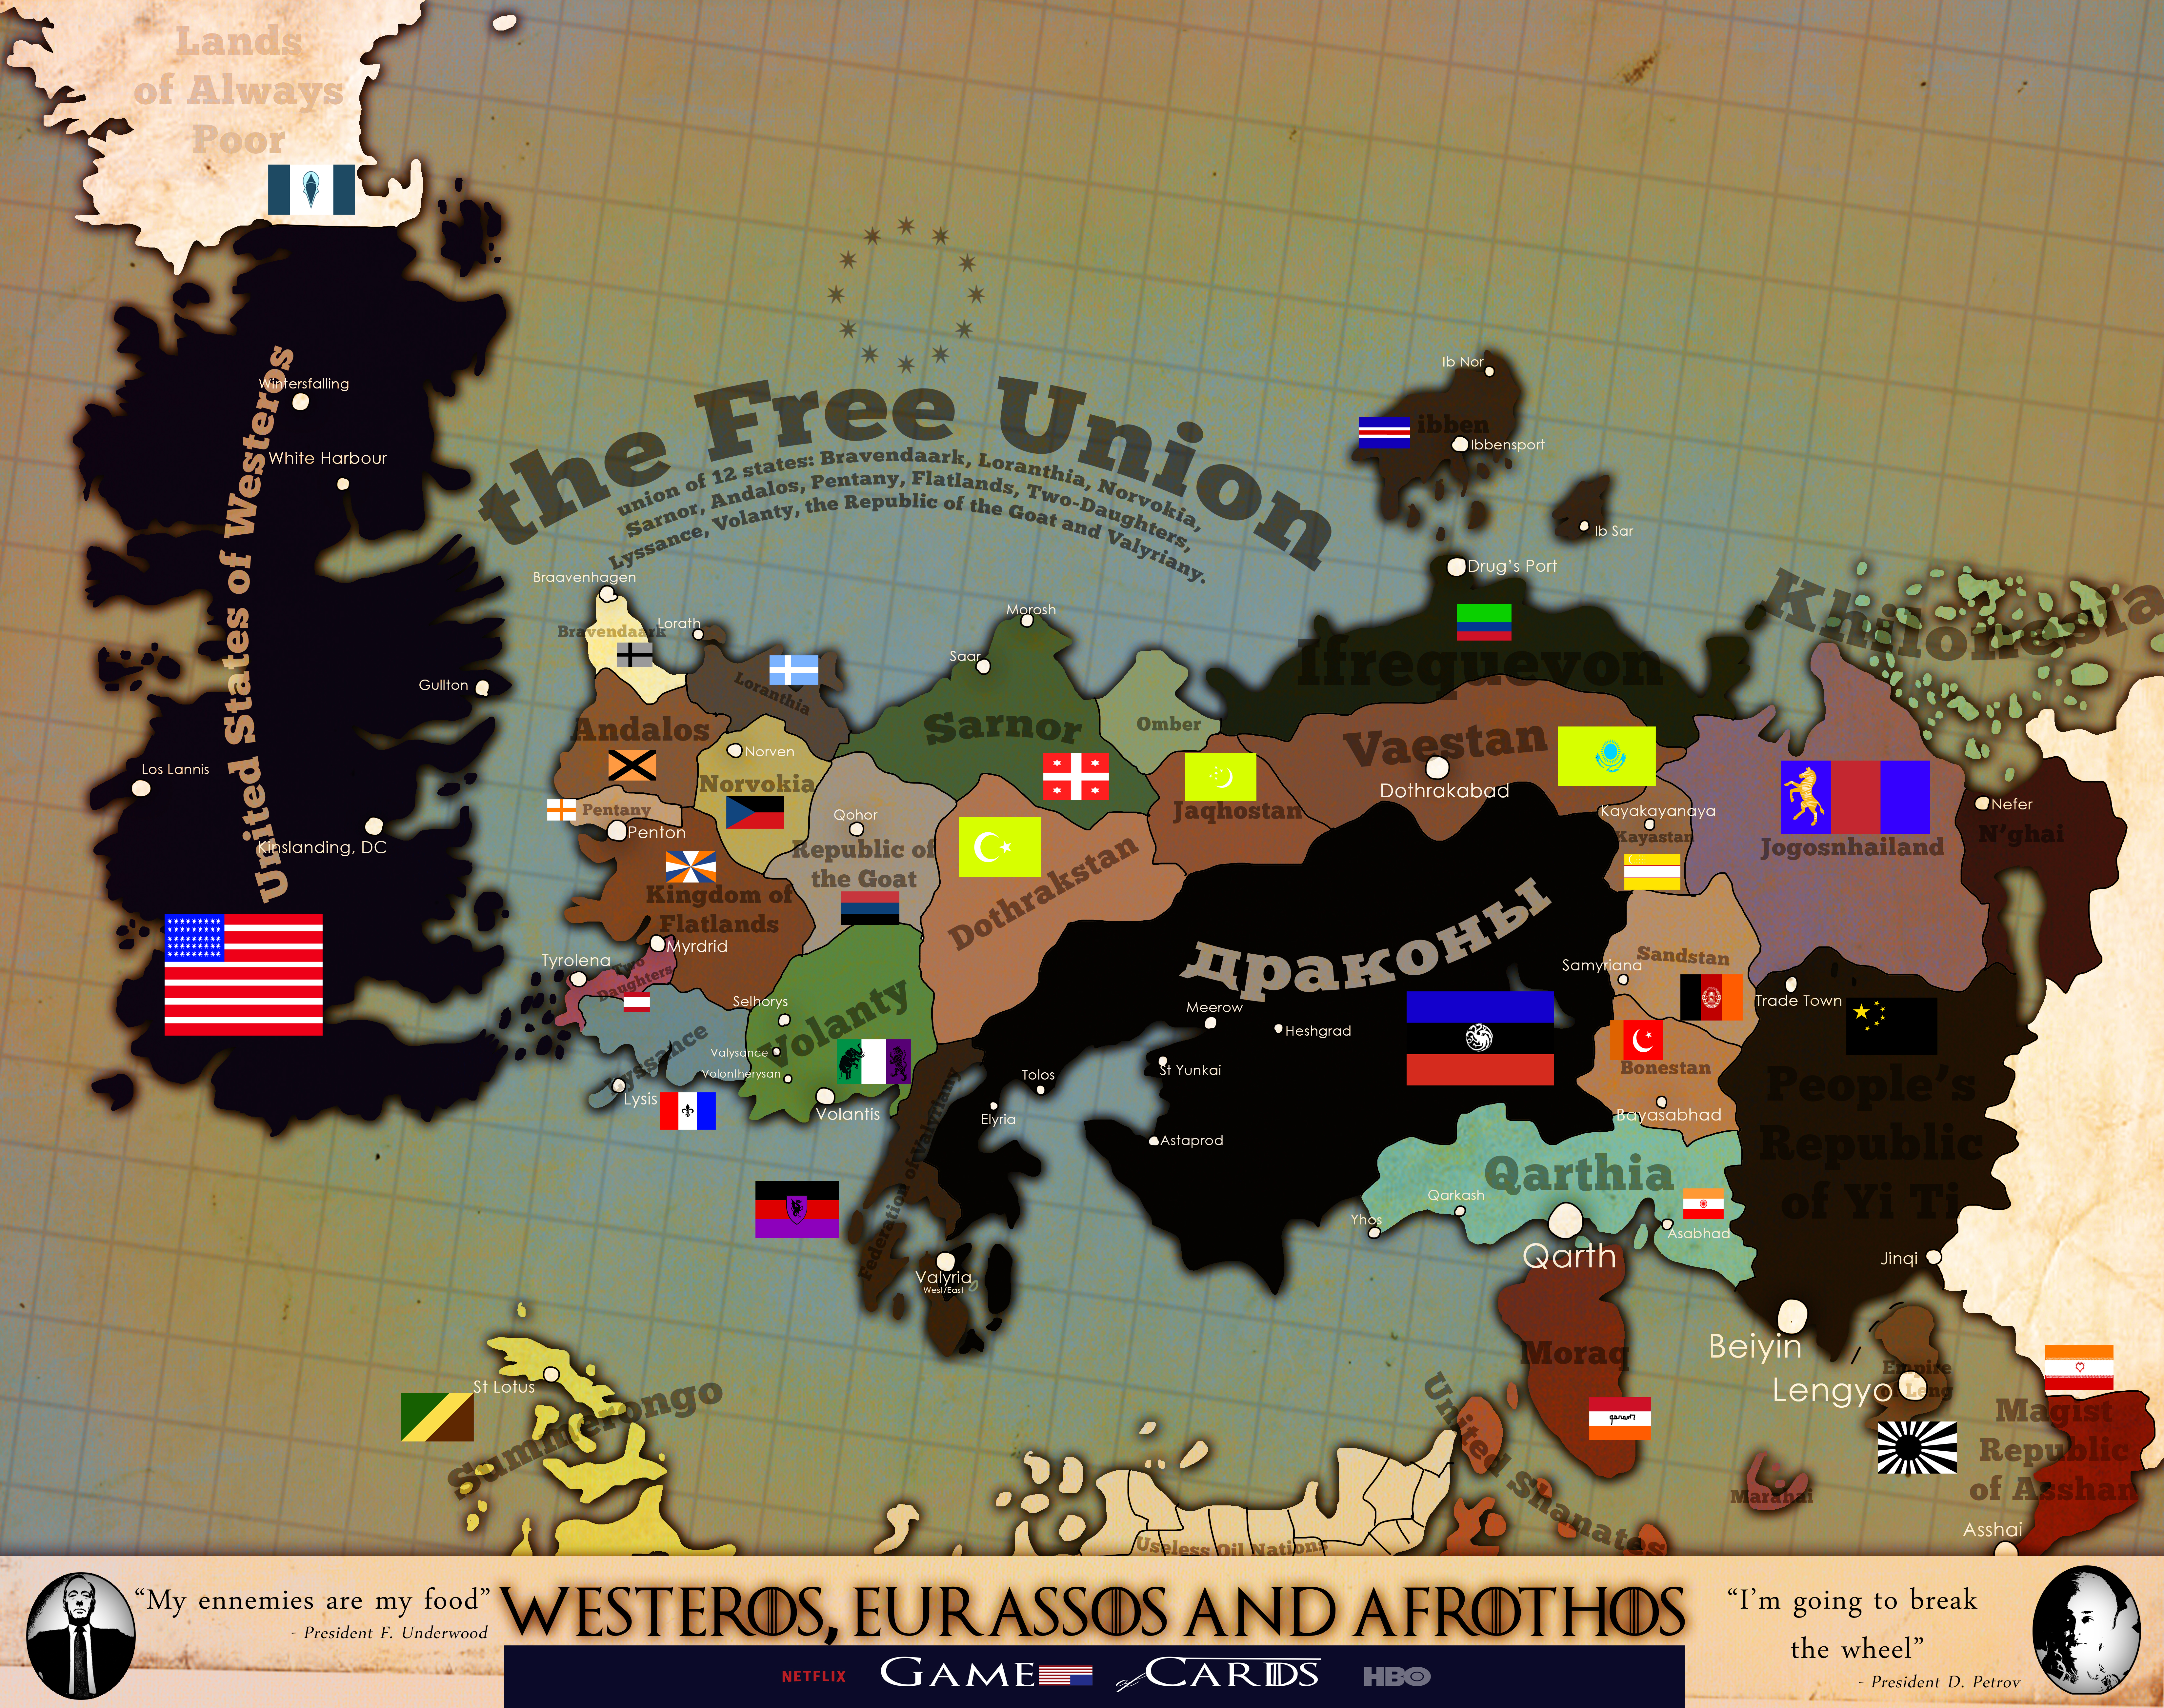 World map game of thrones x house of cards part 2 by thesuricateproject world map game of thrones x house of cards part 2 by thesuricateproject gumiabroncs Choice Image